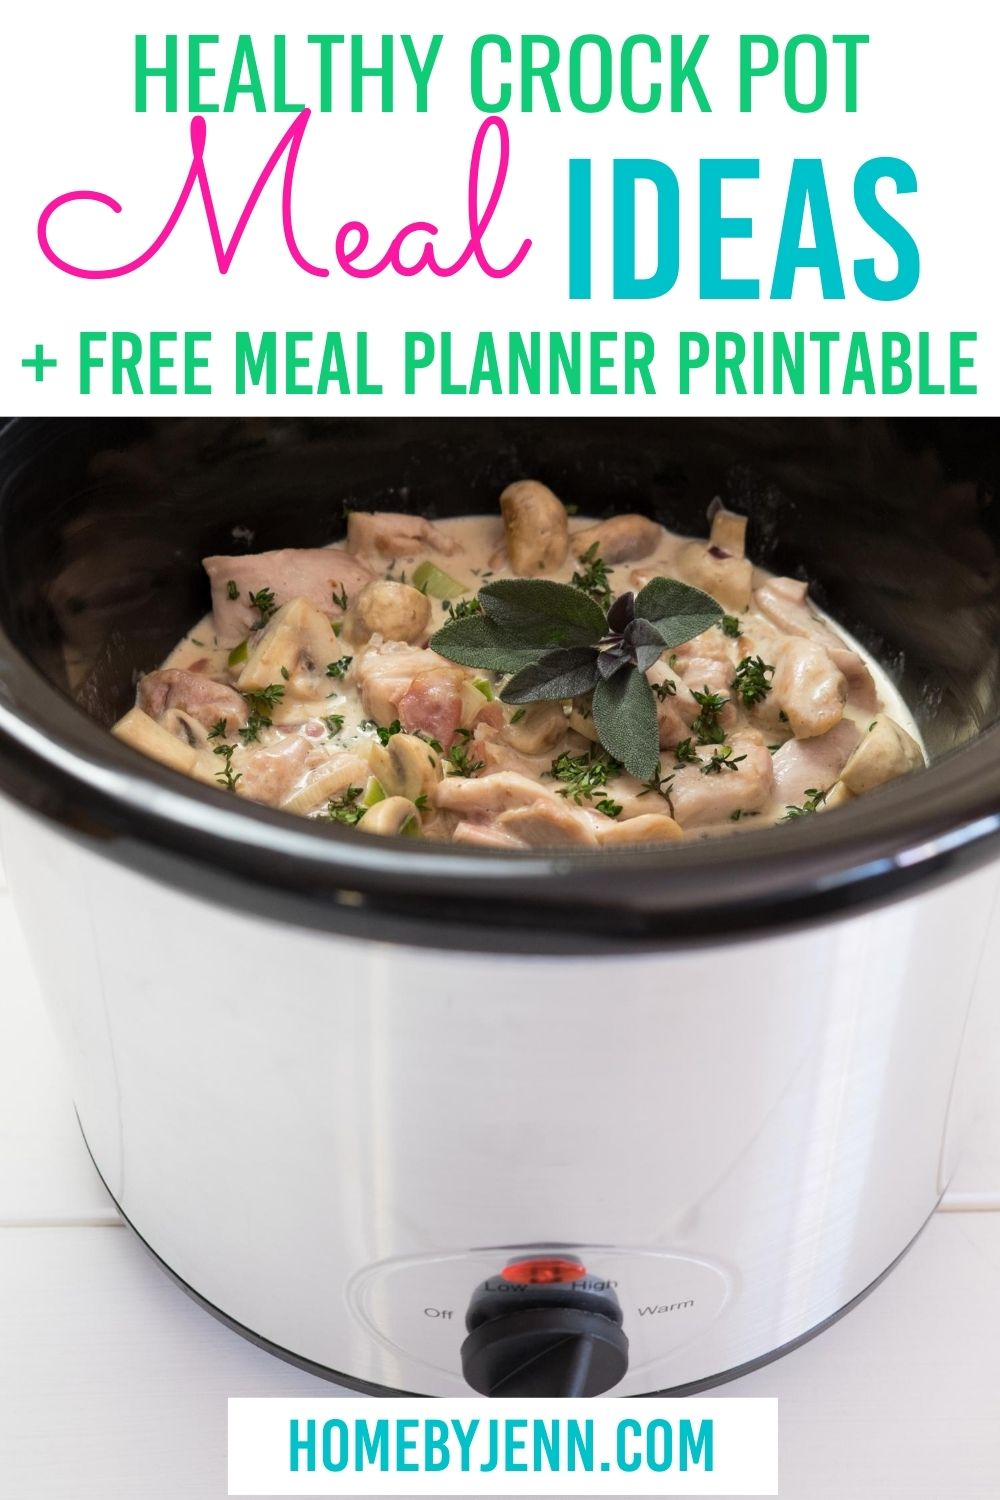 Learn how using your crock pot will save you time. Get some tasty and healthy crock pot meals that will save you time. #slowcooker #crockpot #mealplan #dinners #dinnerideas #setitandforgetit via @homebyjenn